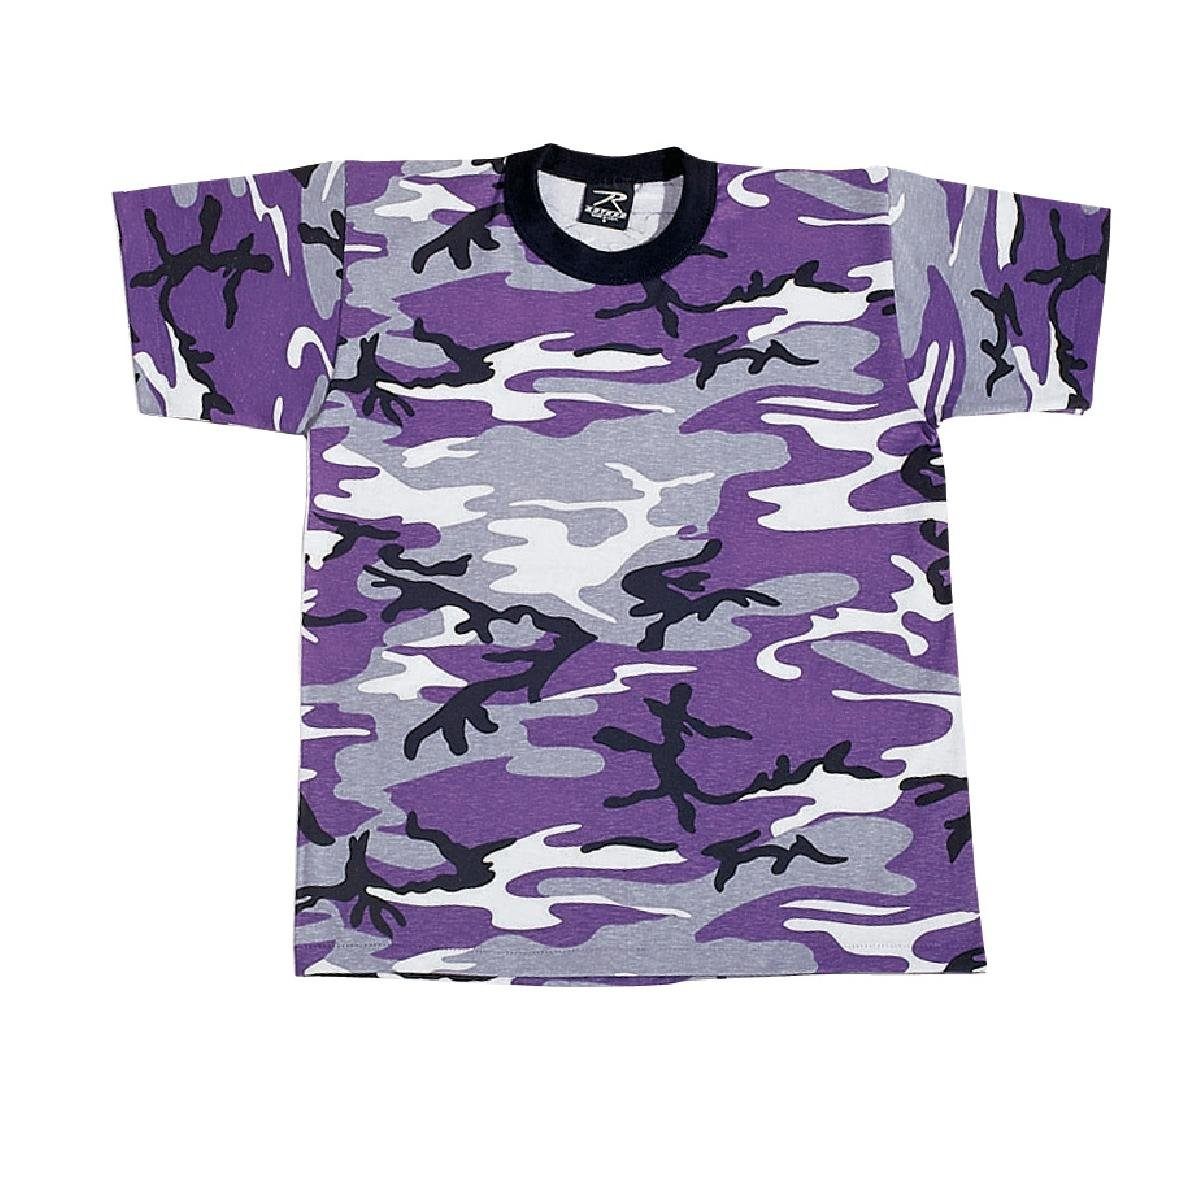 Rothco Kids T-Shirt, Ultra Violet, Medium